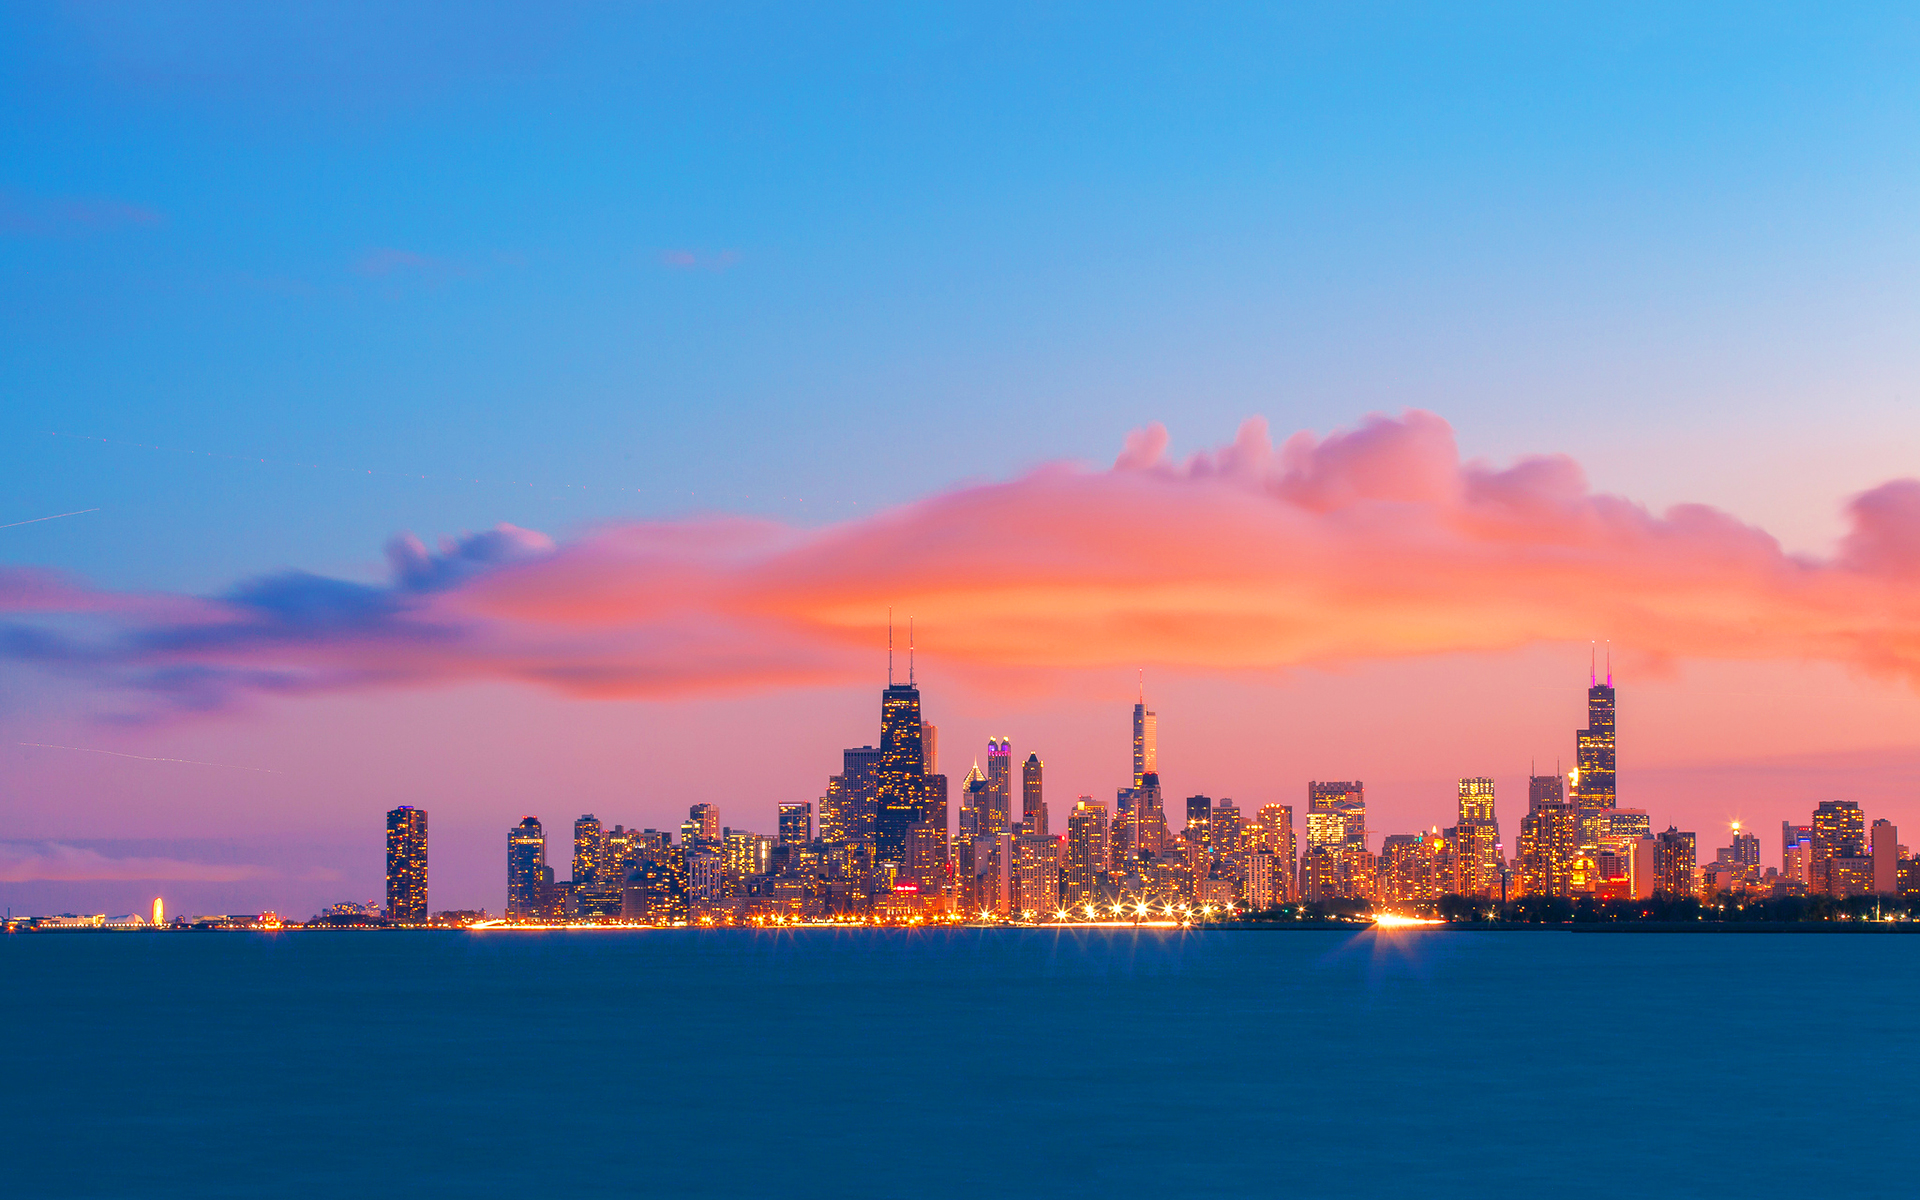 Chicago skyline evening sunset